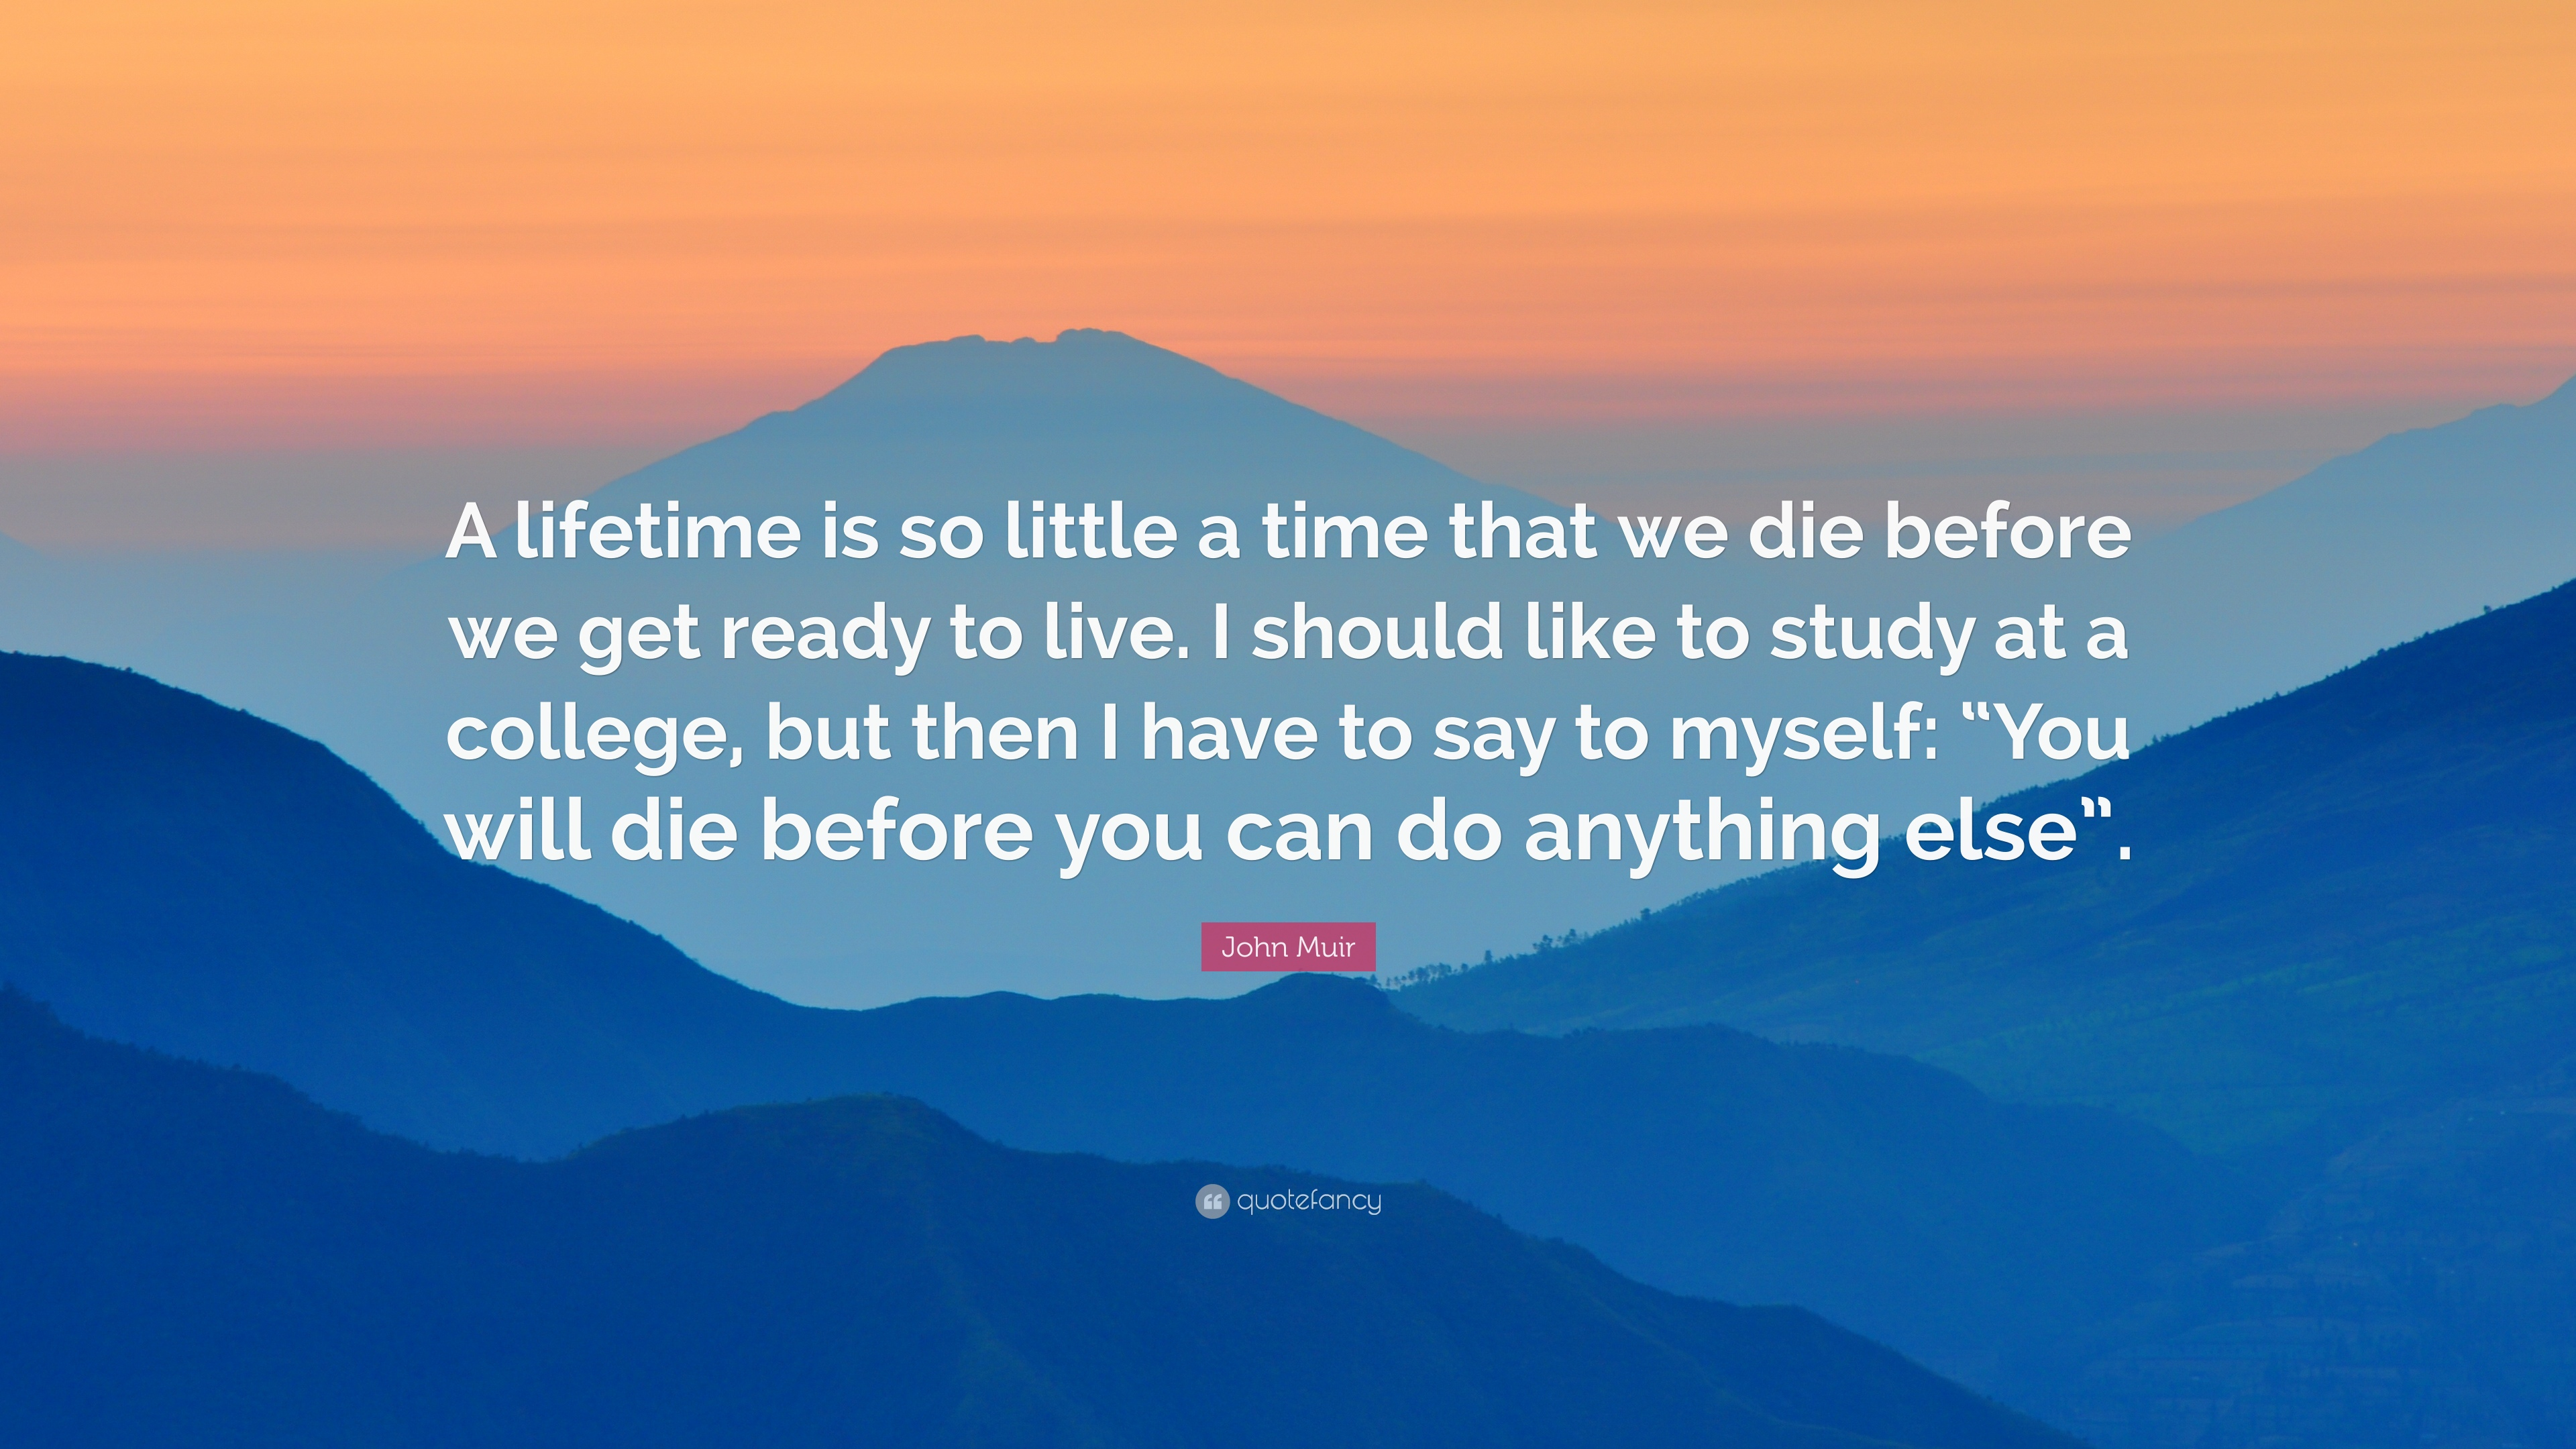 Study Quotes: U201cA Lifetime Is So Little A Time That We Die Before We